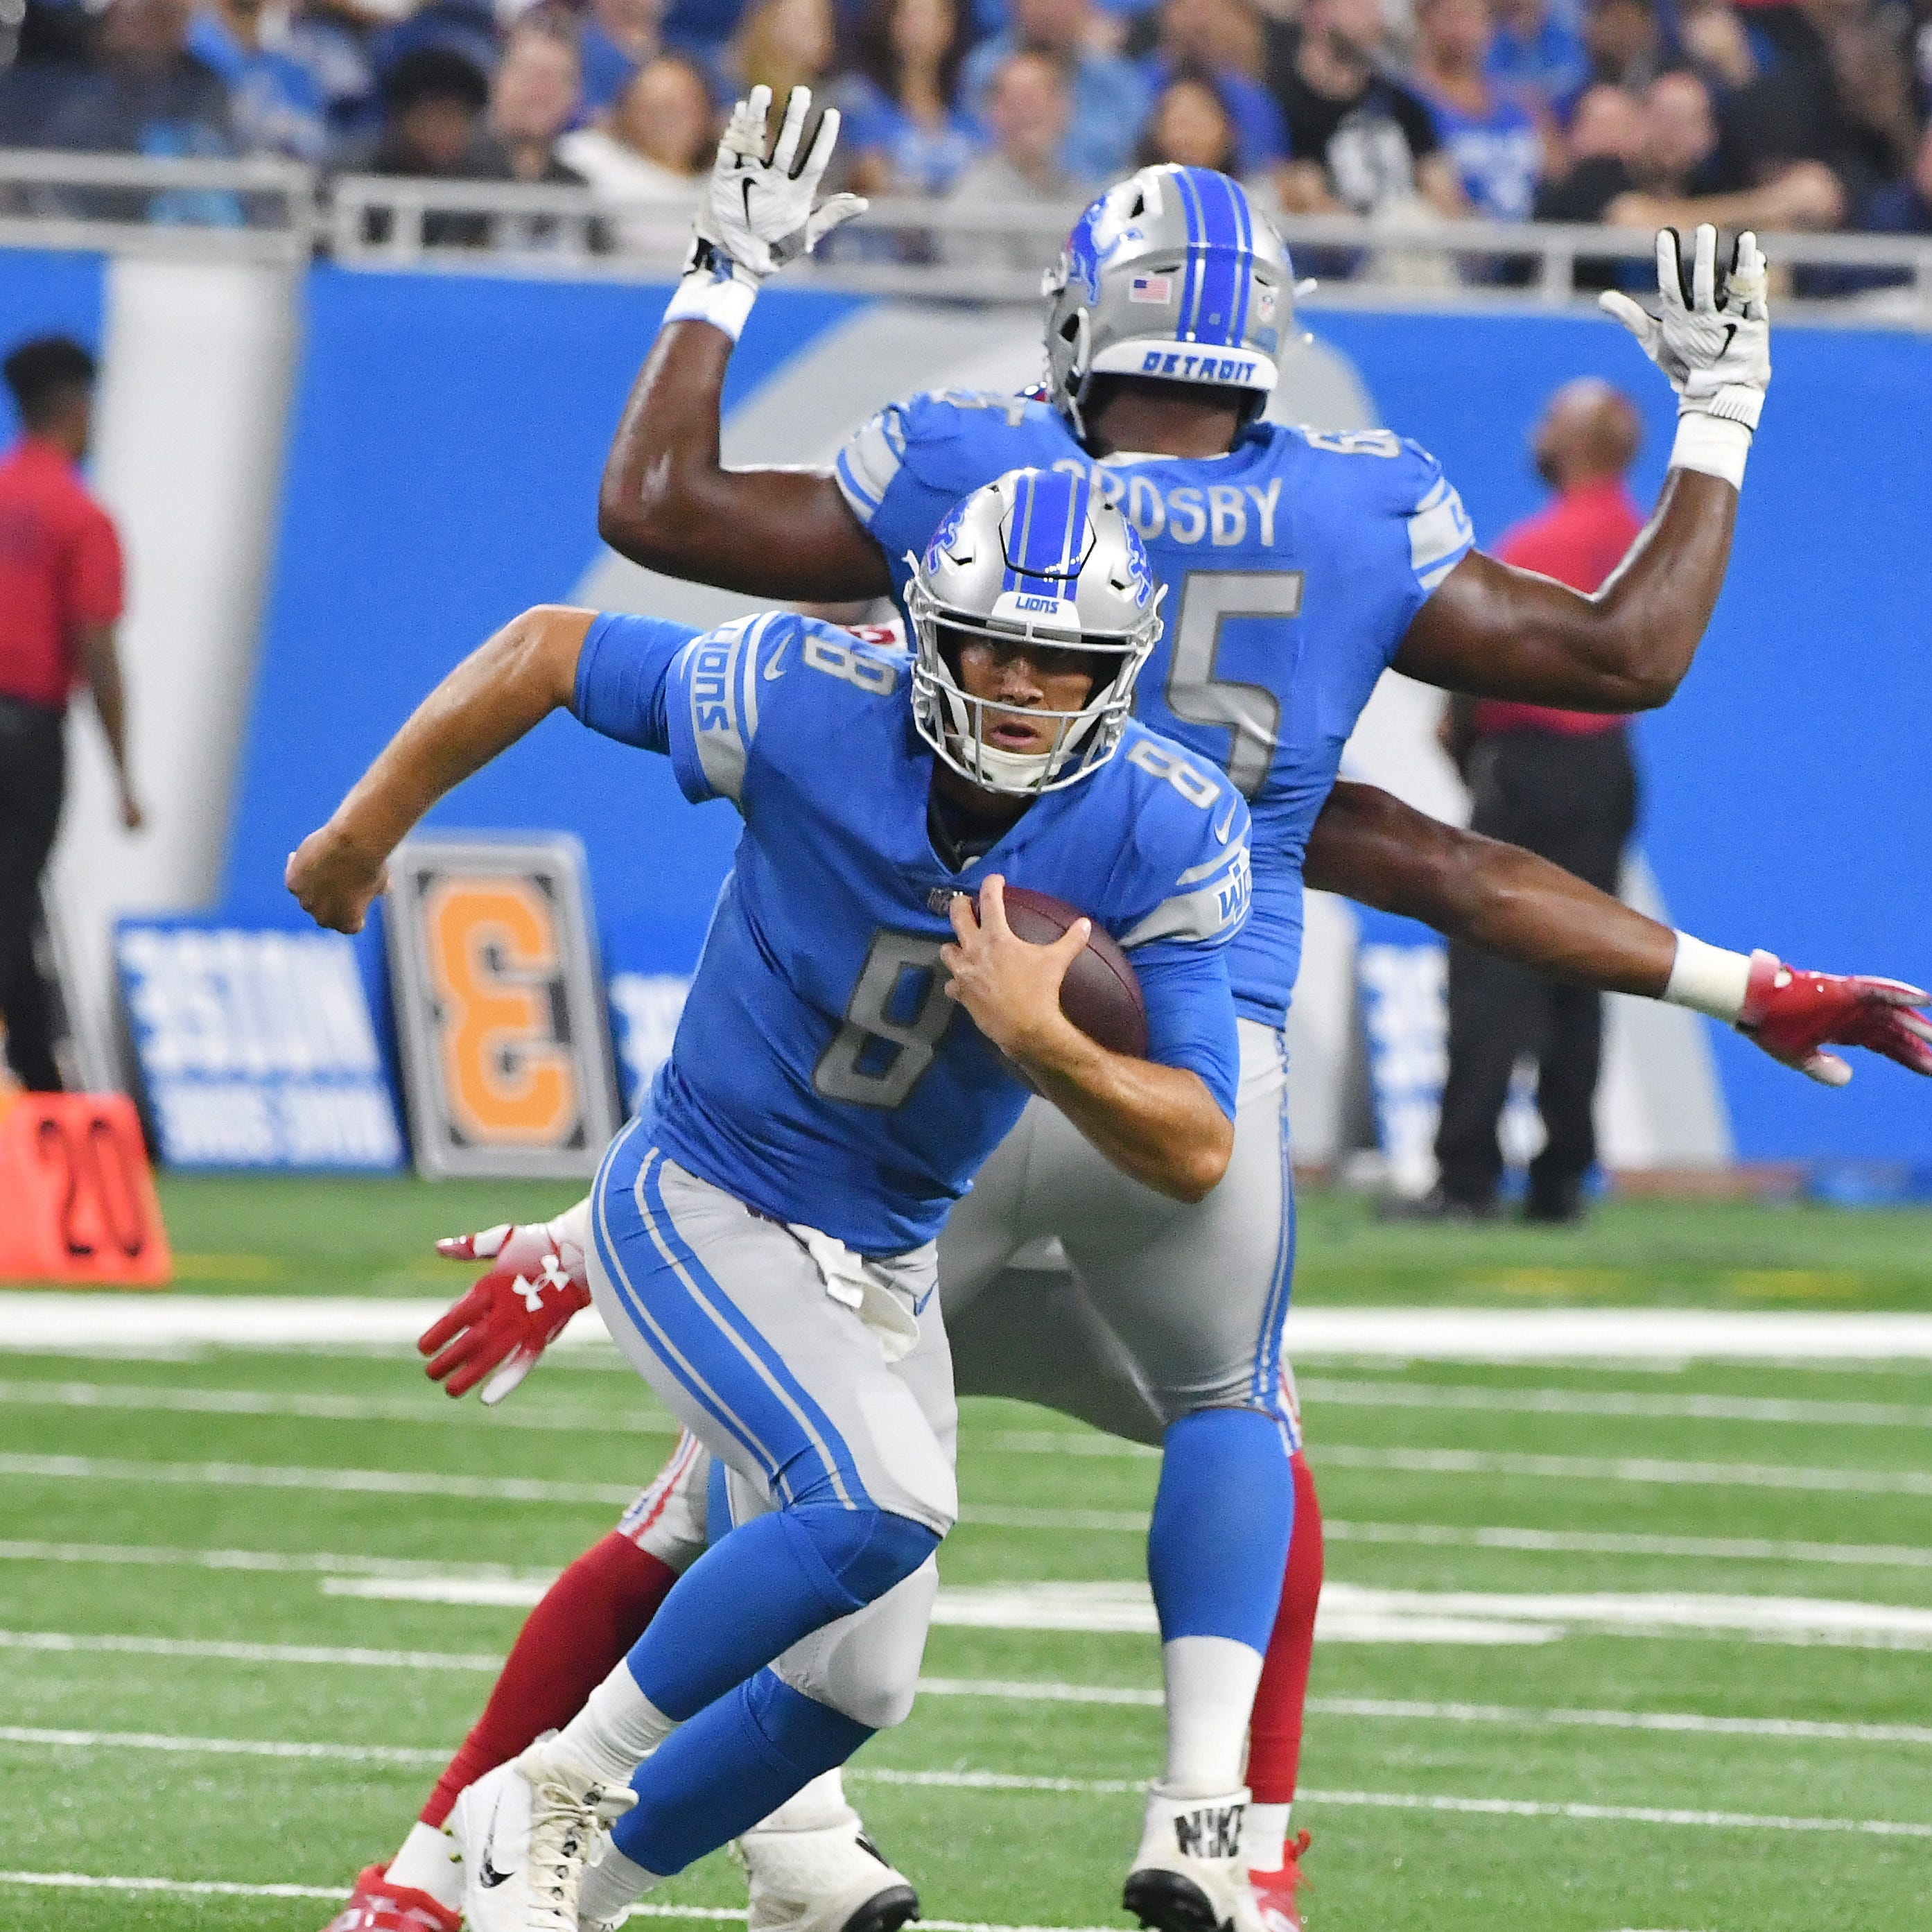 Niyo: Lions backup QB race offers little comfort